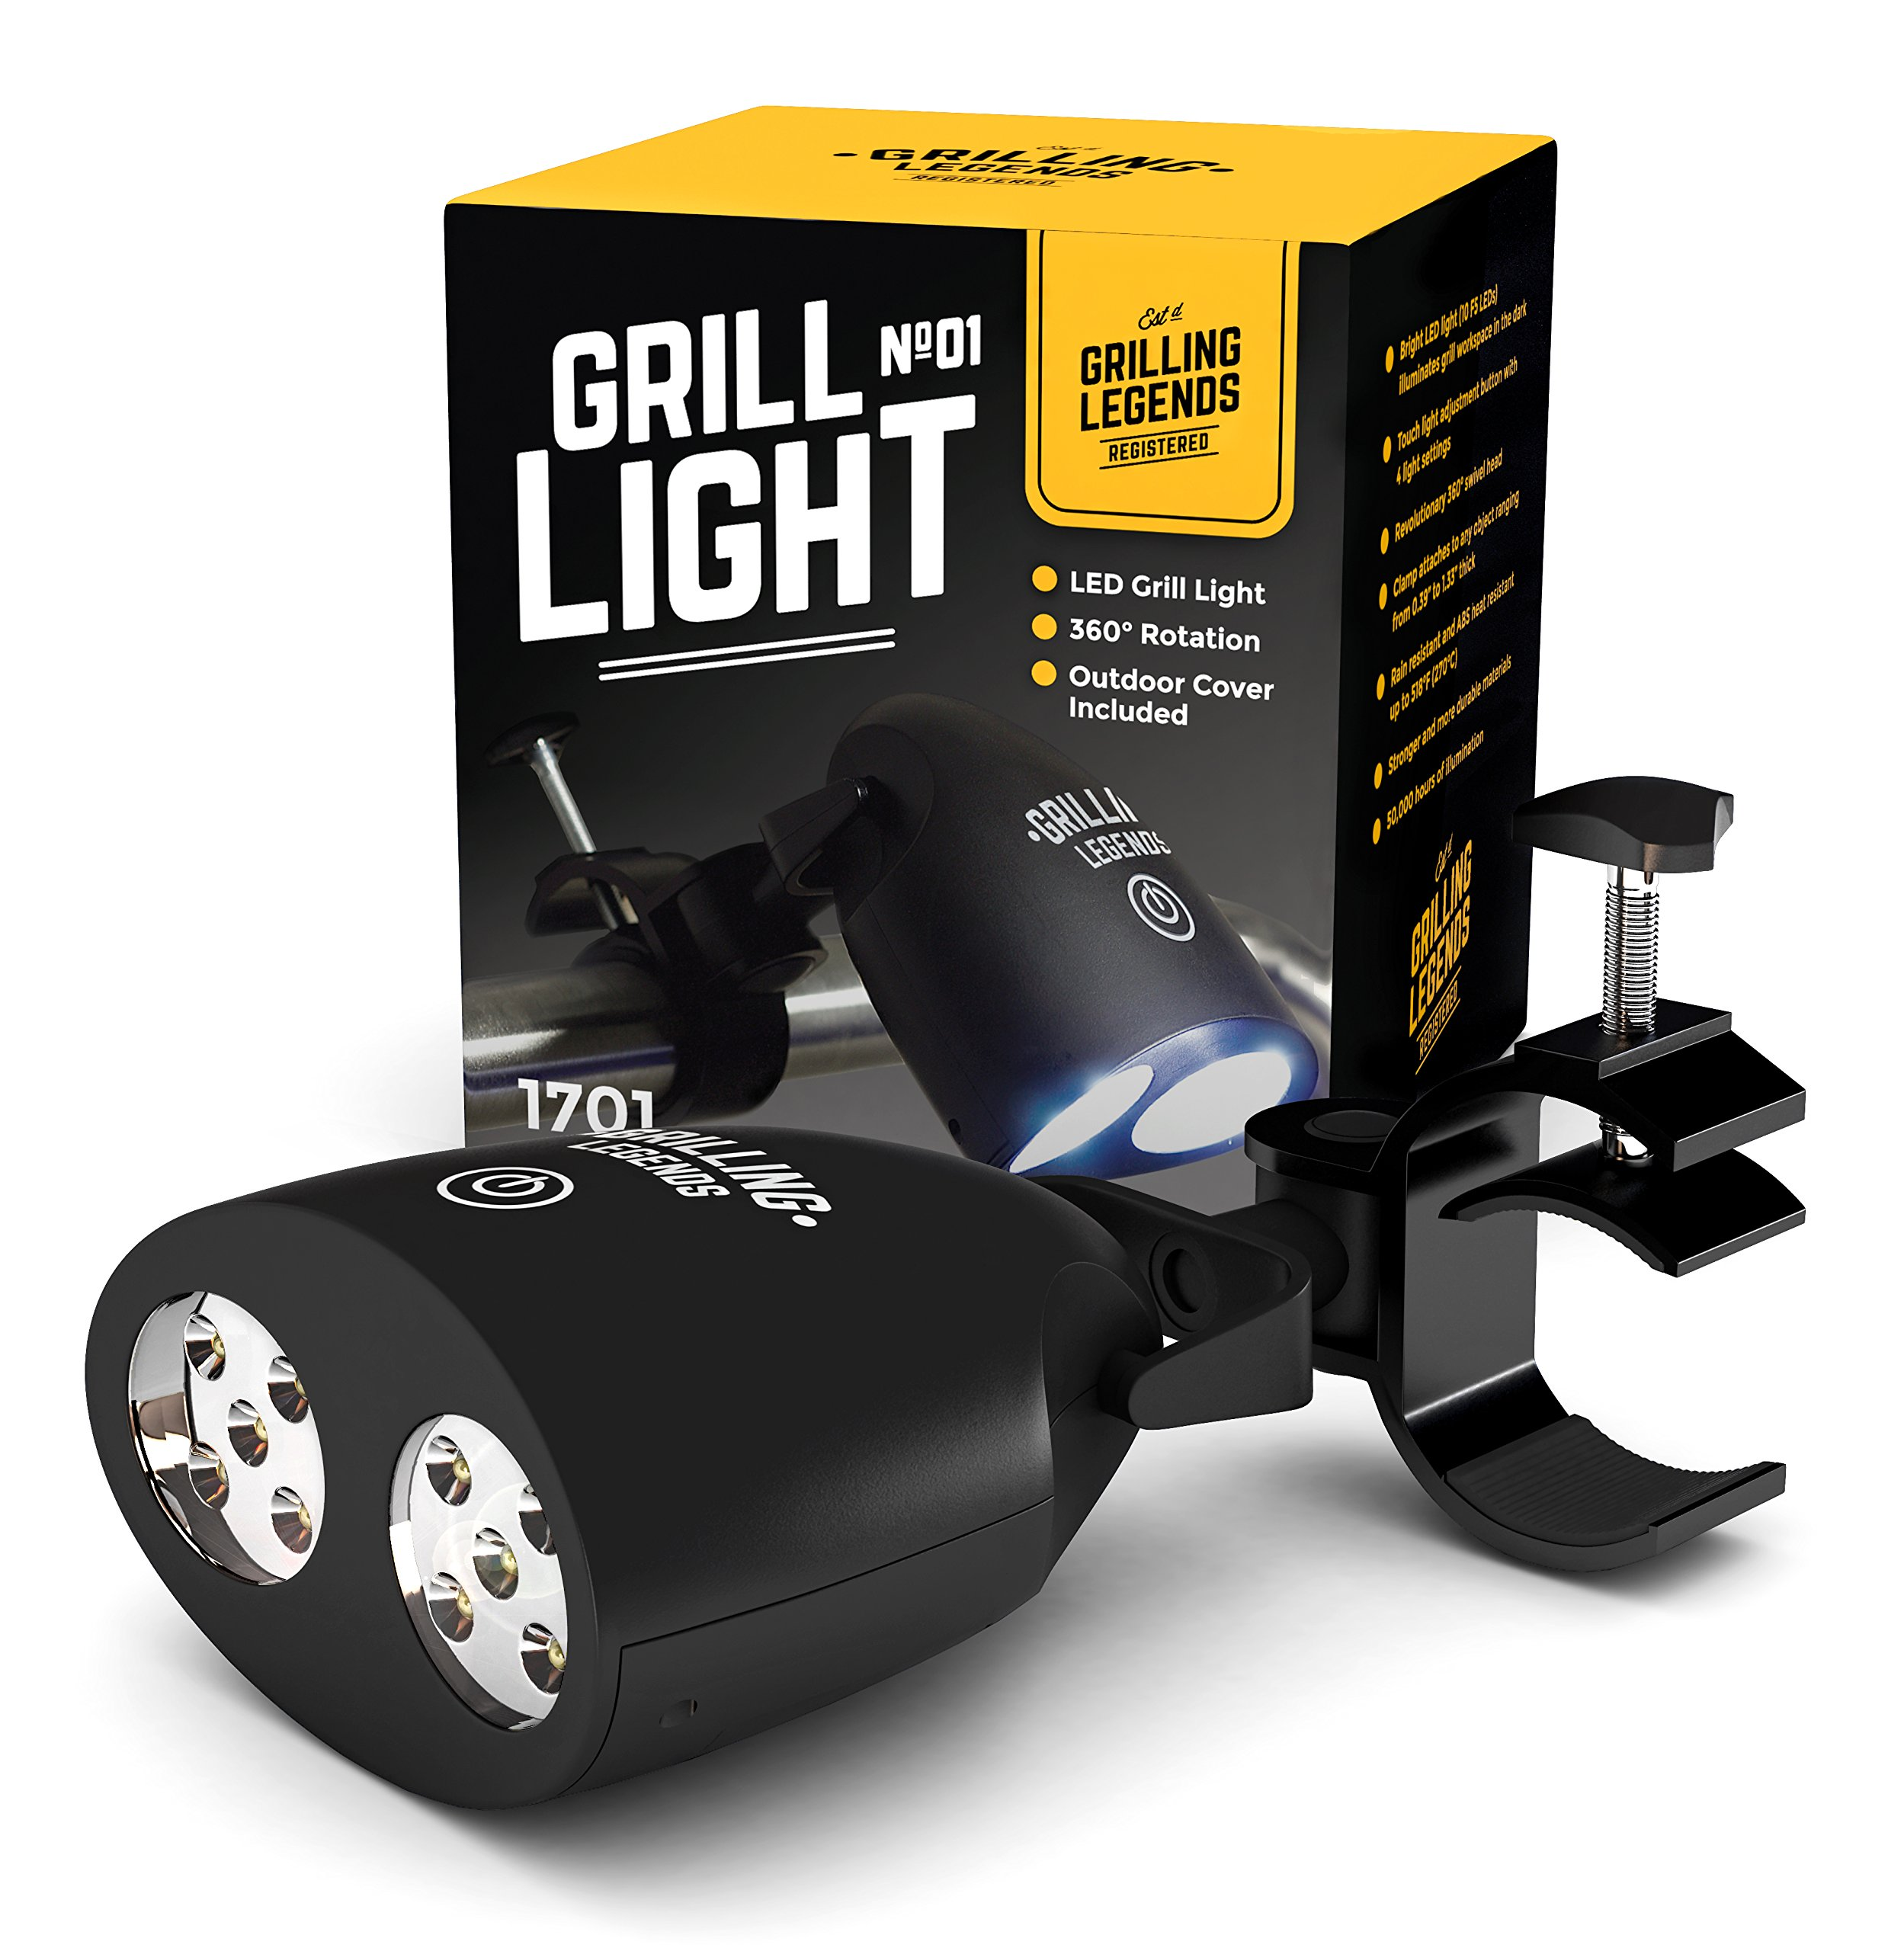 2018 Barbecue Grill Light - 10 Ultra Bright LED Lights - Strong and Weather Resistant - Powerful LED BBQ Light for Charcoal/Electric/Gas Grill